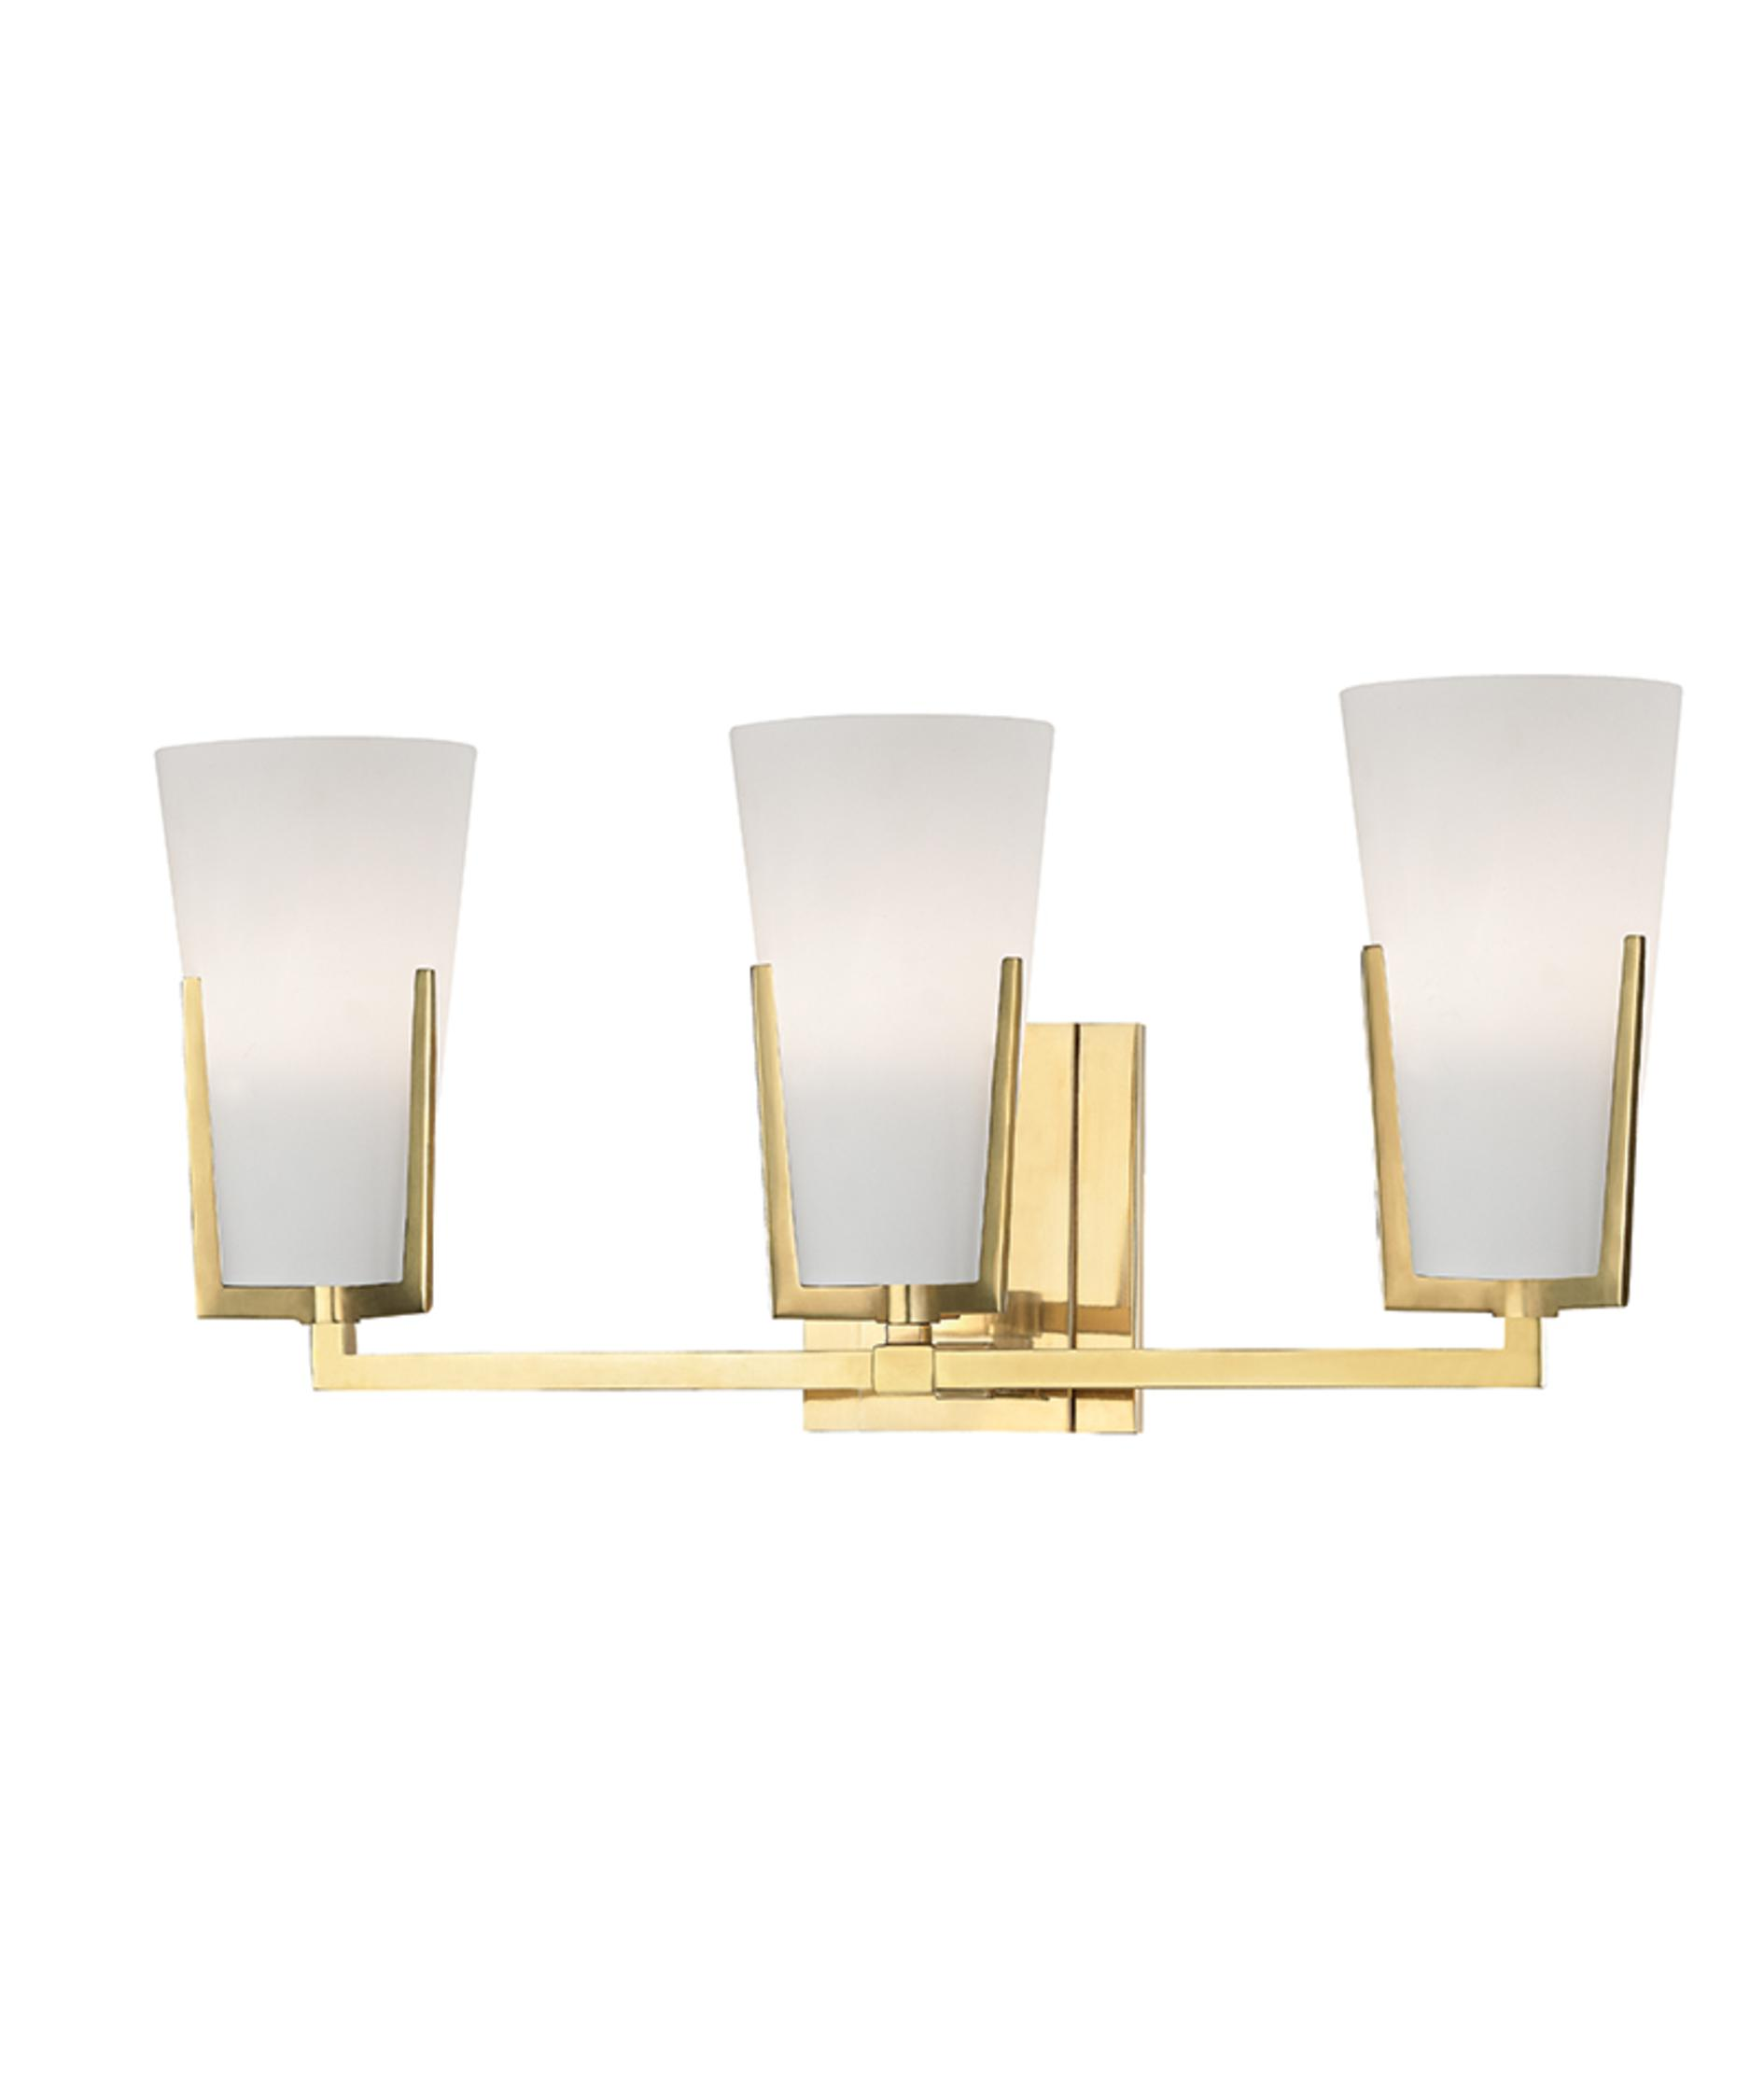 Bathroom Vanity Lights Brass hudson valley 1803 upton 19 inch wide bath vanity light | capitol